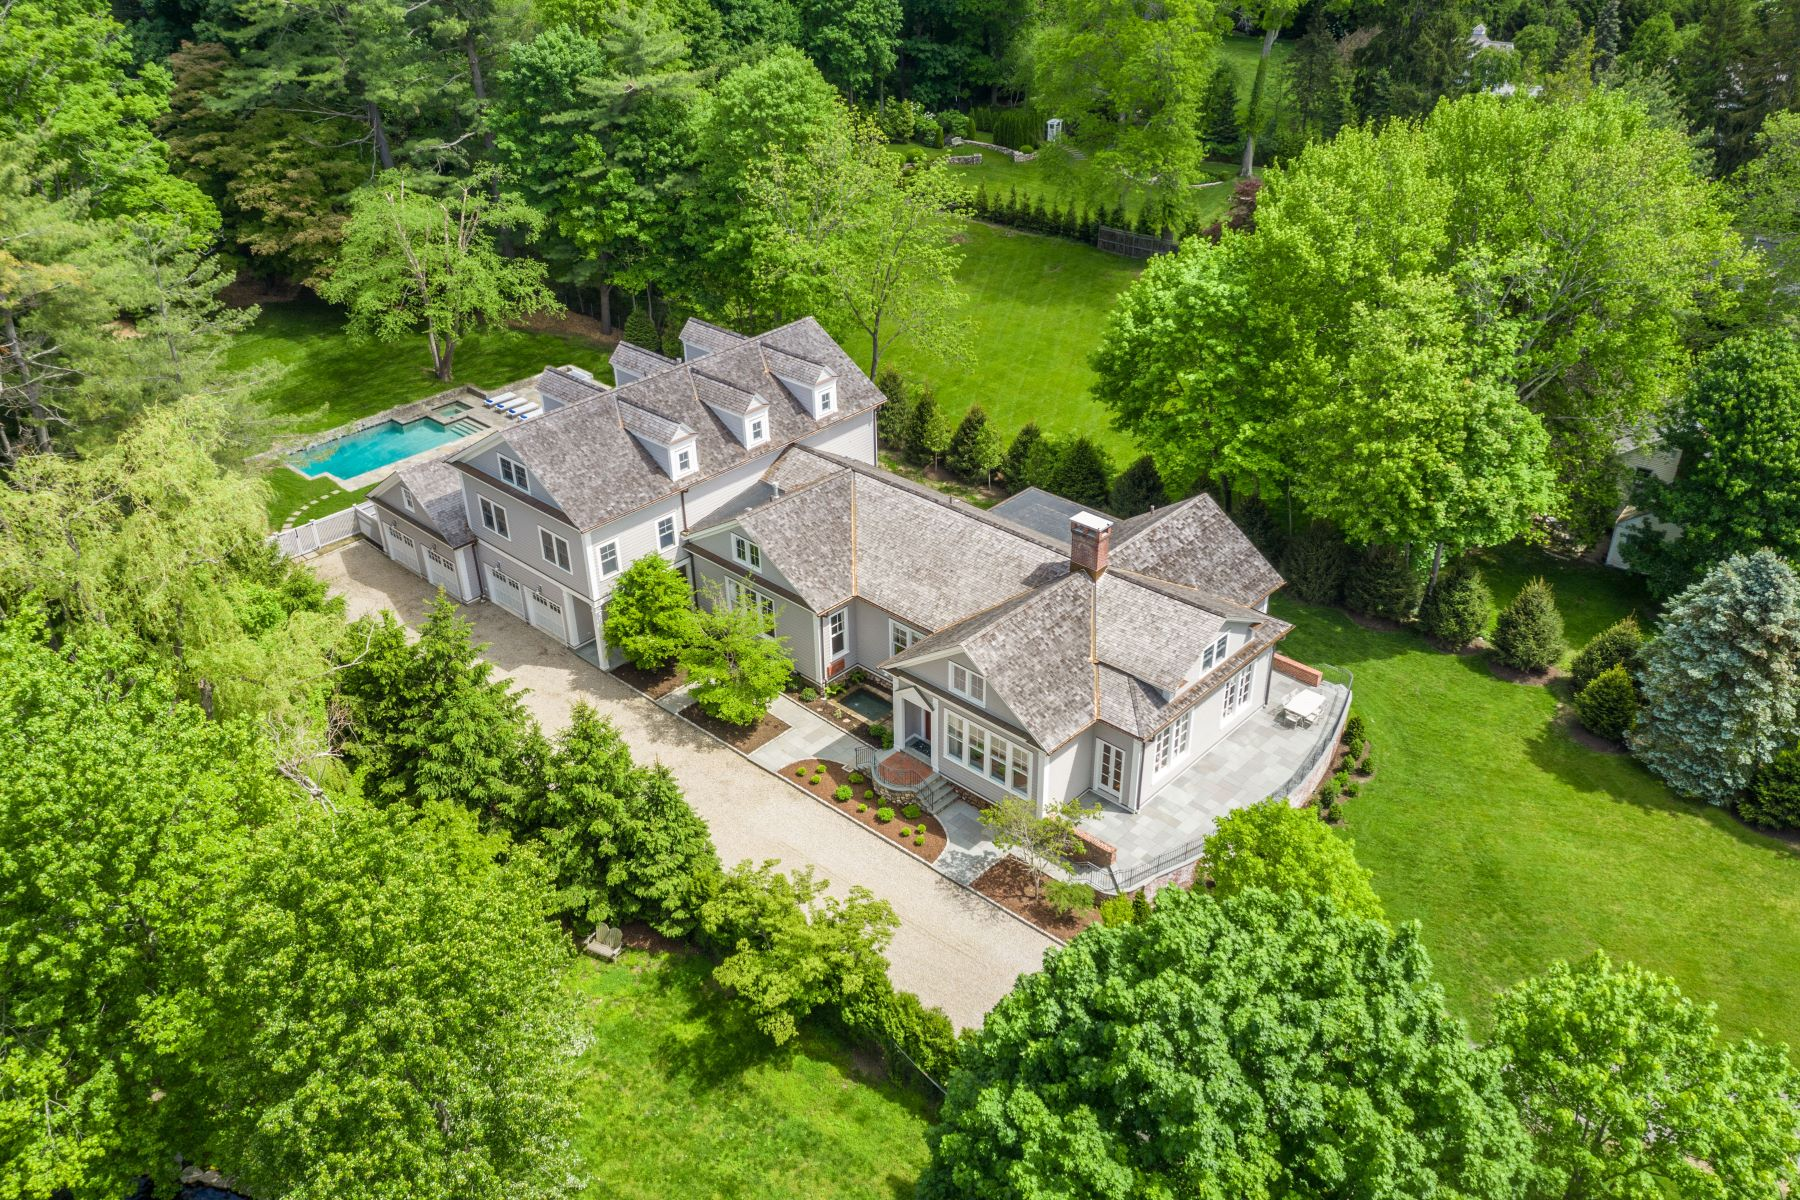 Single Family Homes for Sale at Tucked Away in the Heart of Greens Farms 37 Clapboard Hill Road Westport, Connecticut 06880 United States